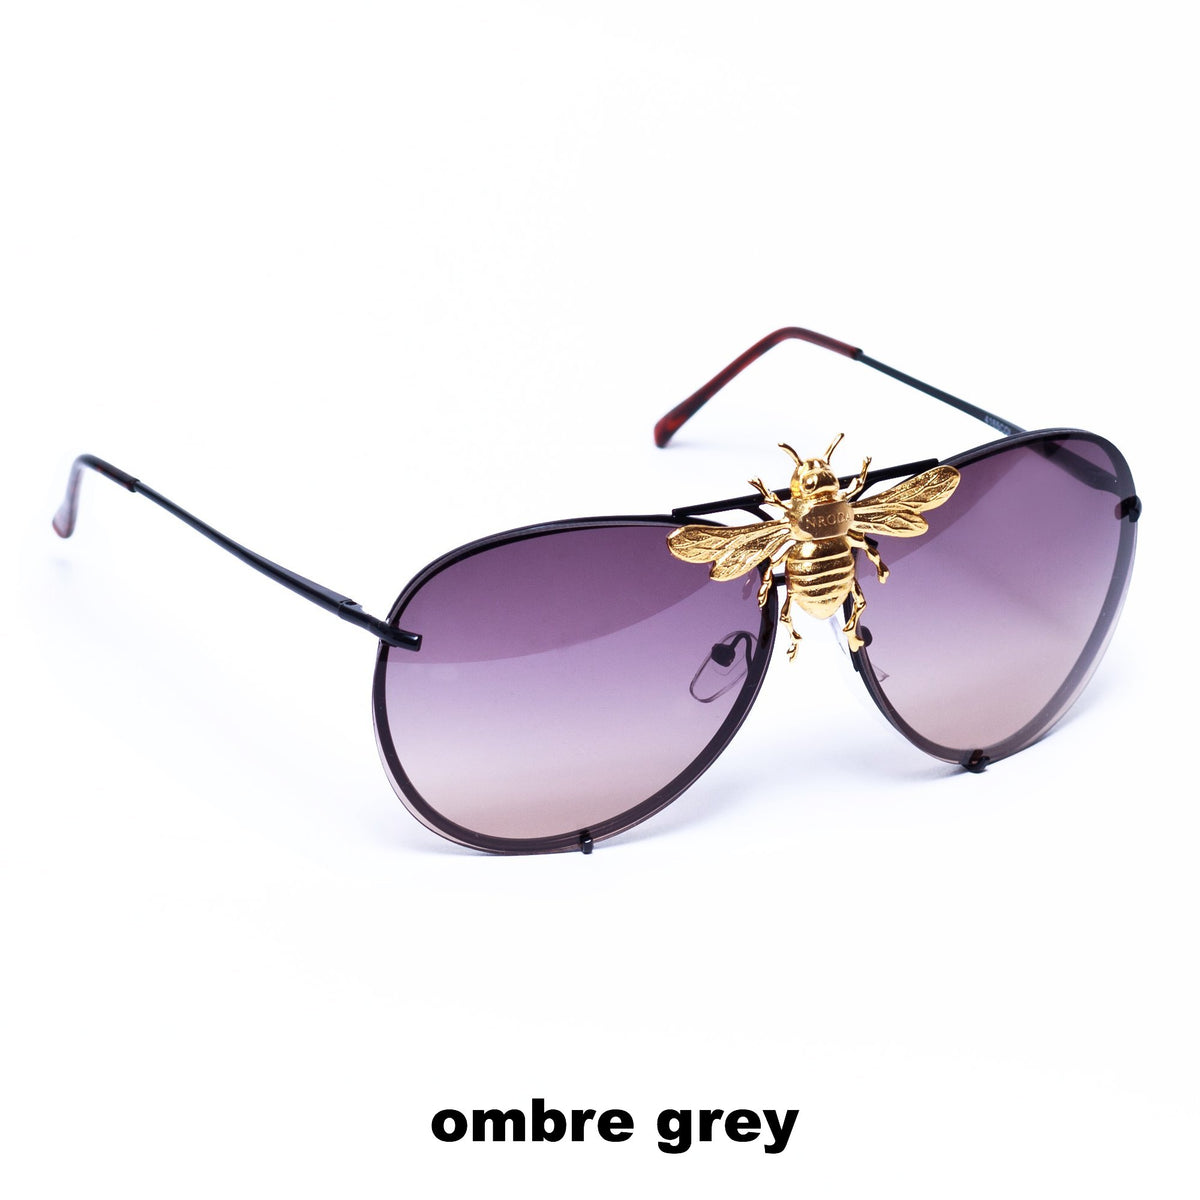 I'll Be Rich Forever Bee Sunglasses - Limited Sunset Edition Ombré Grey SUNNIES + OPTICS Sunglasses Collection, Tnemnroda man- NRODA